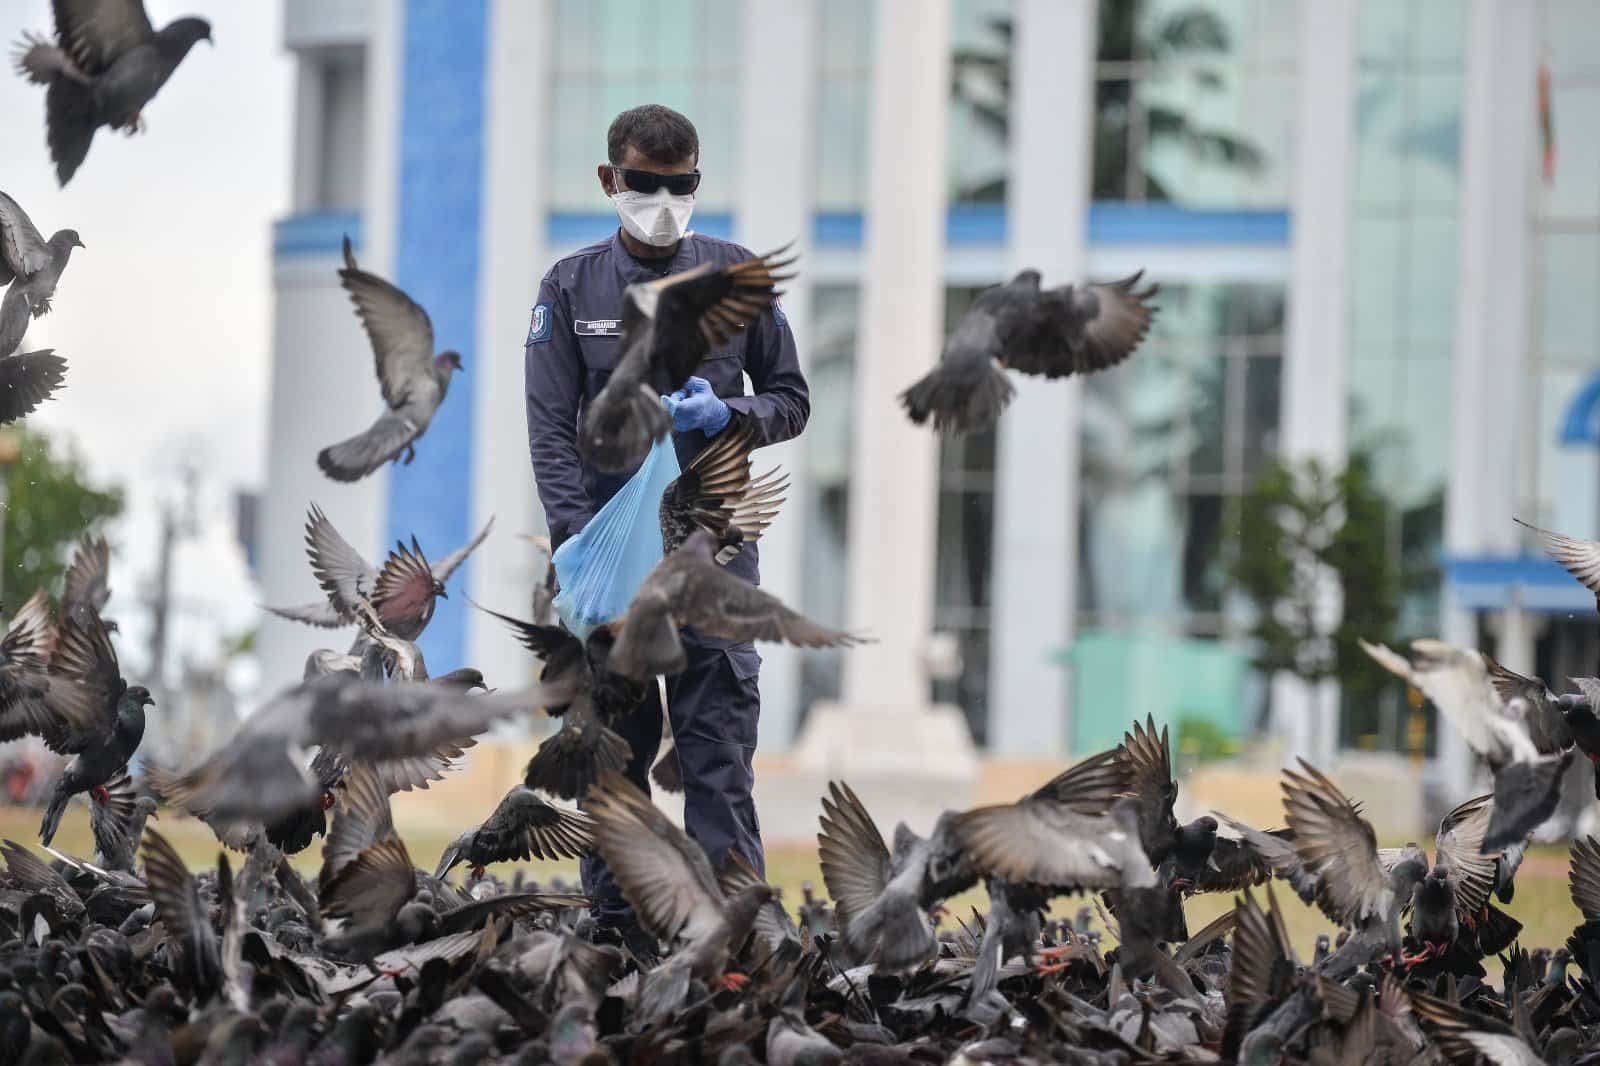 Maldives Police Services individual feeding the pigeons due to the situation in maldives.